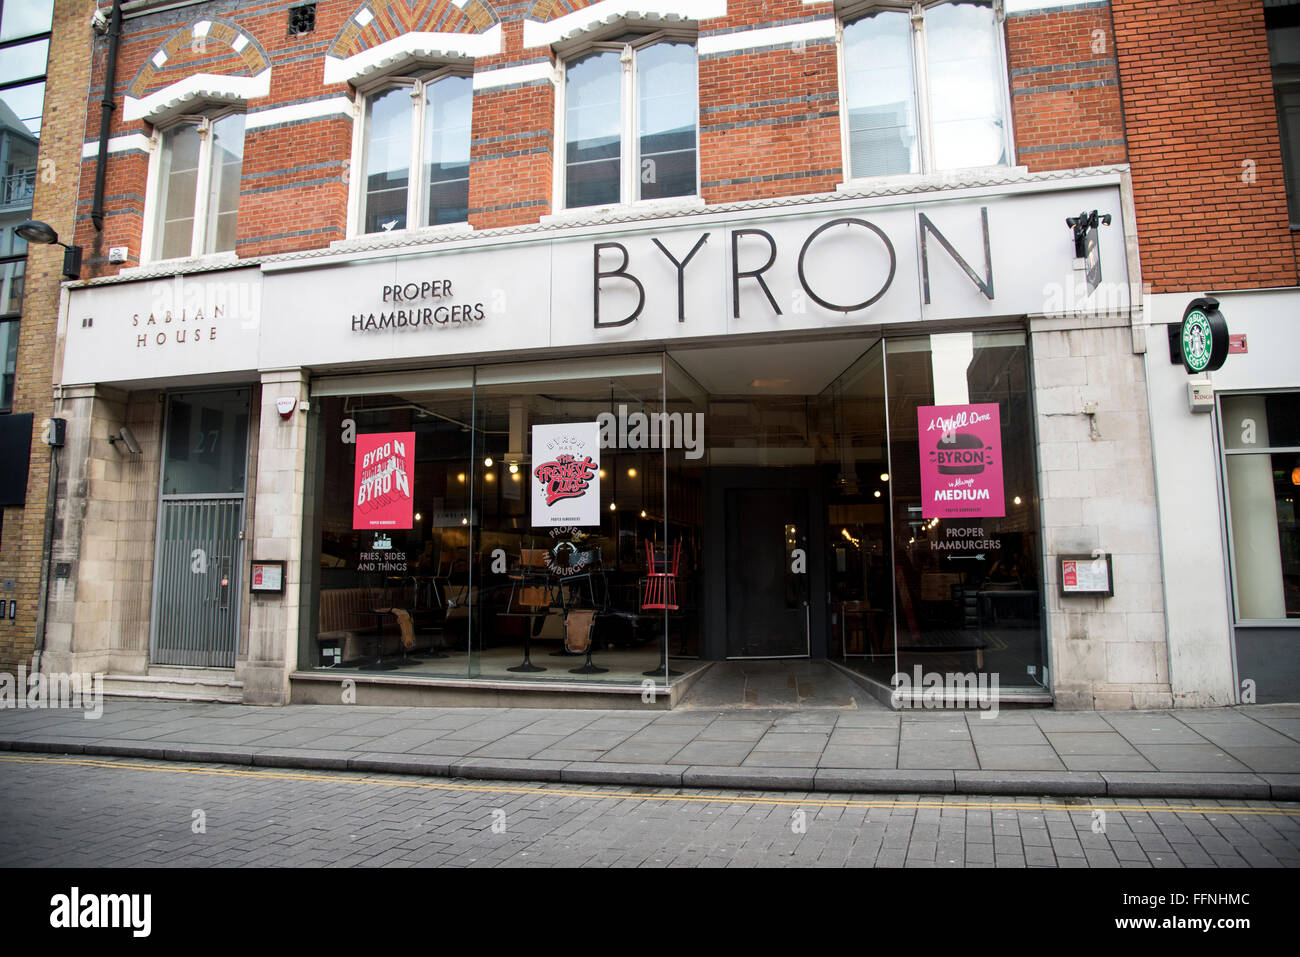 Byron hamburger joint restaurant cafe - Stock Image